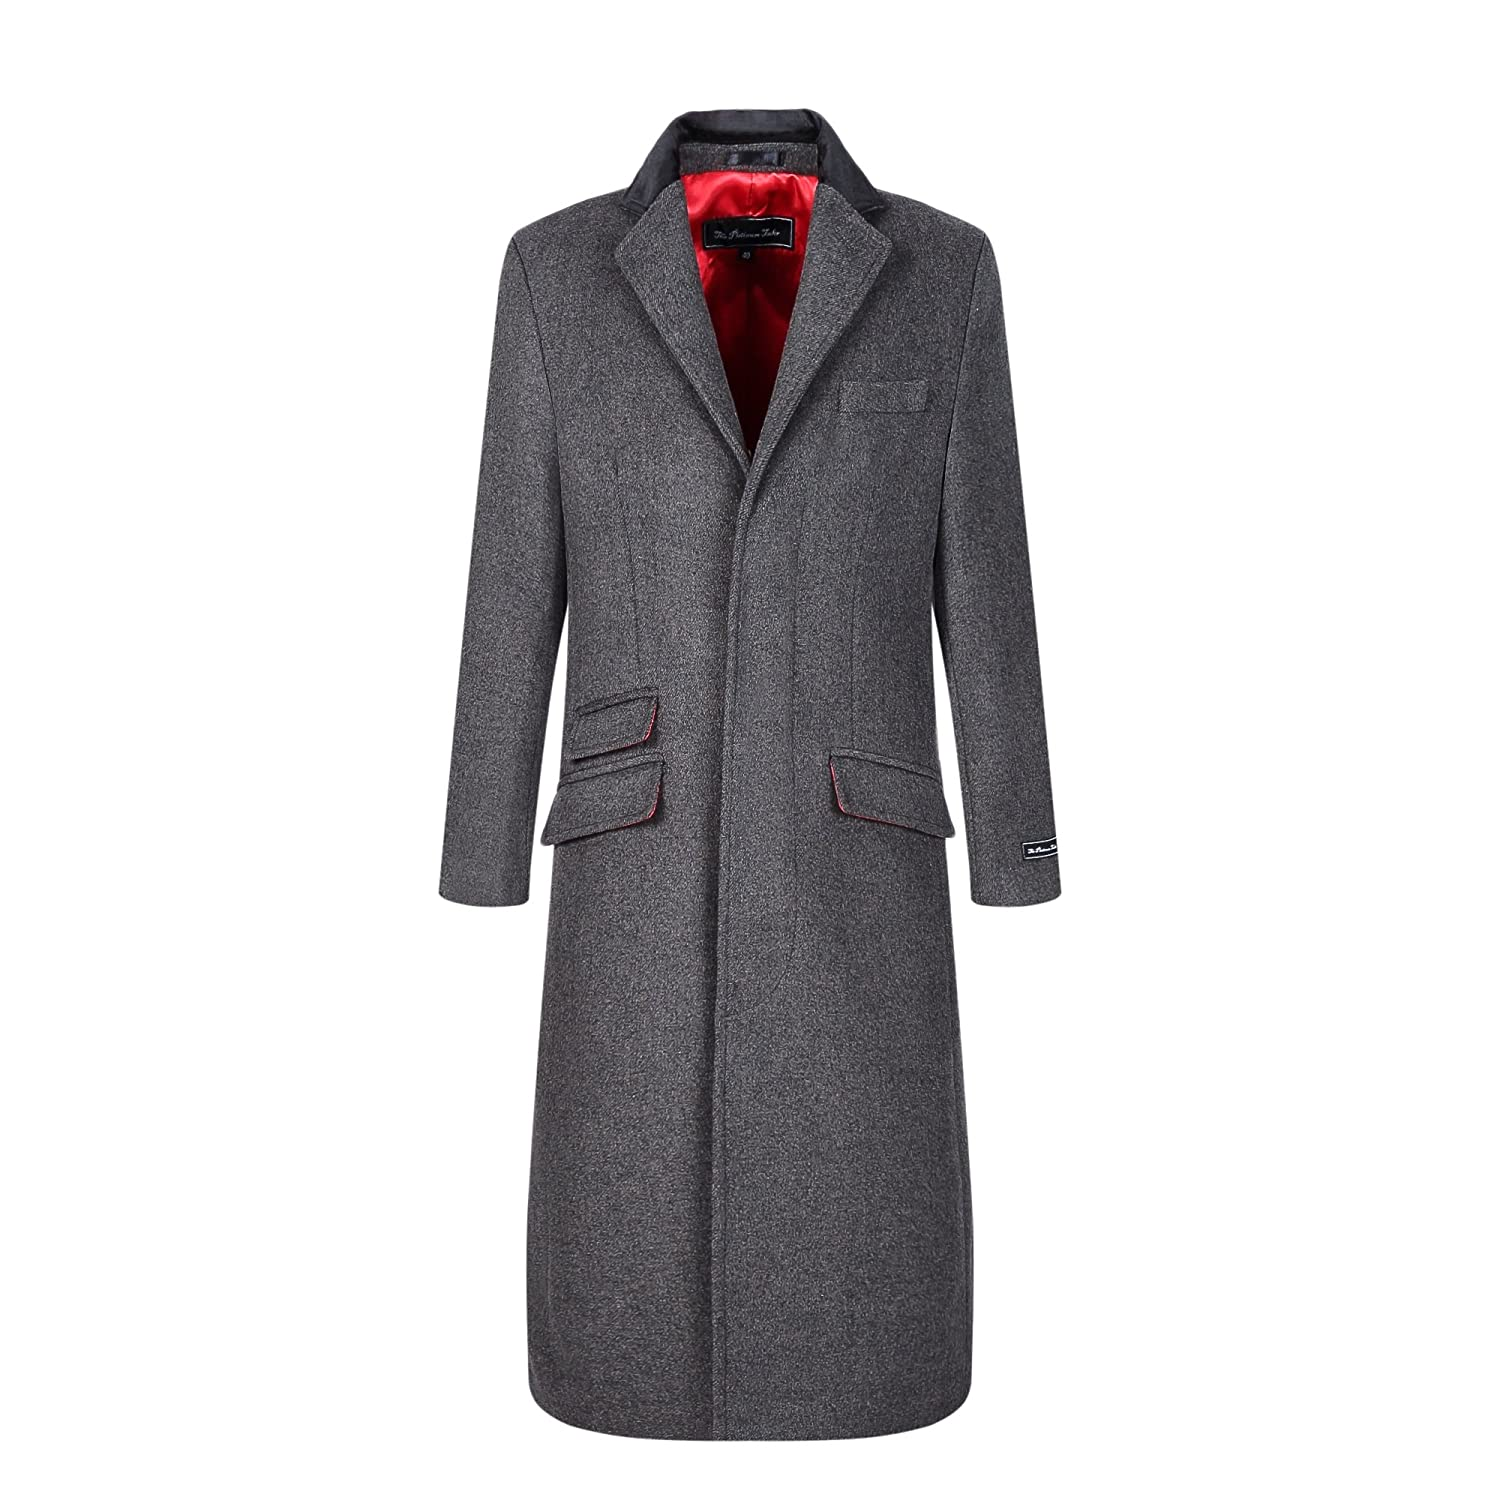 The Platinum Tailor Mens Grey Wool & Cashmere Covert Overcoat Warm Winter MOD Cromby Coat Velvet Collar & Red Satin Lining